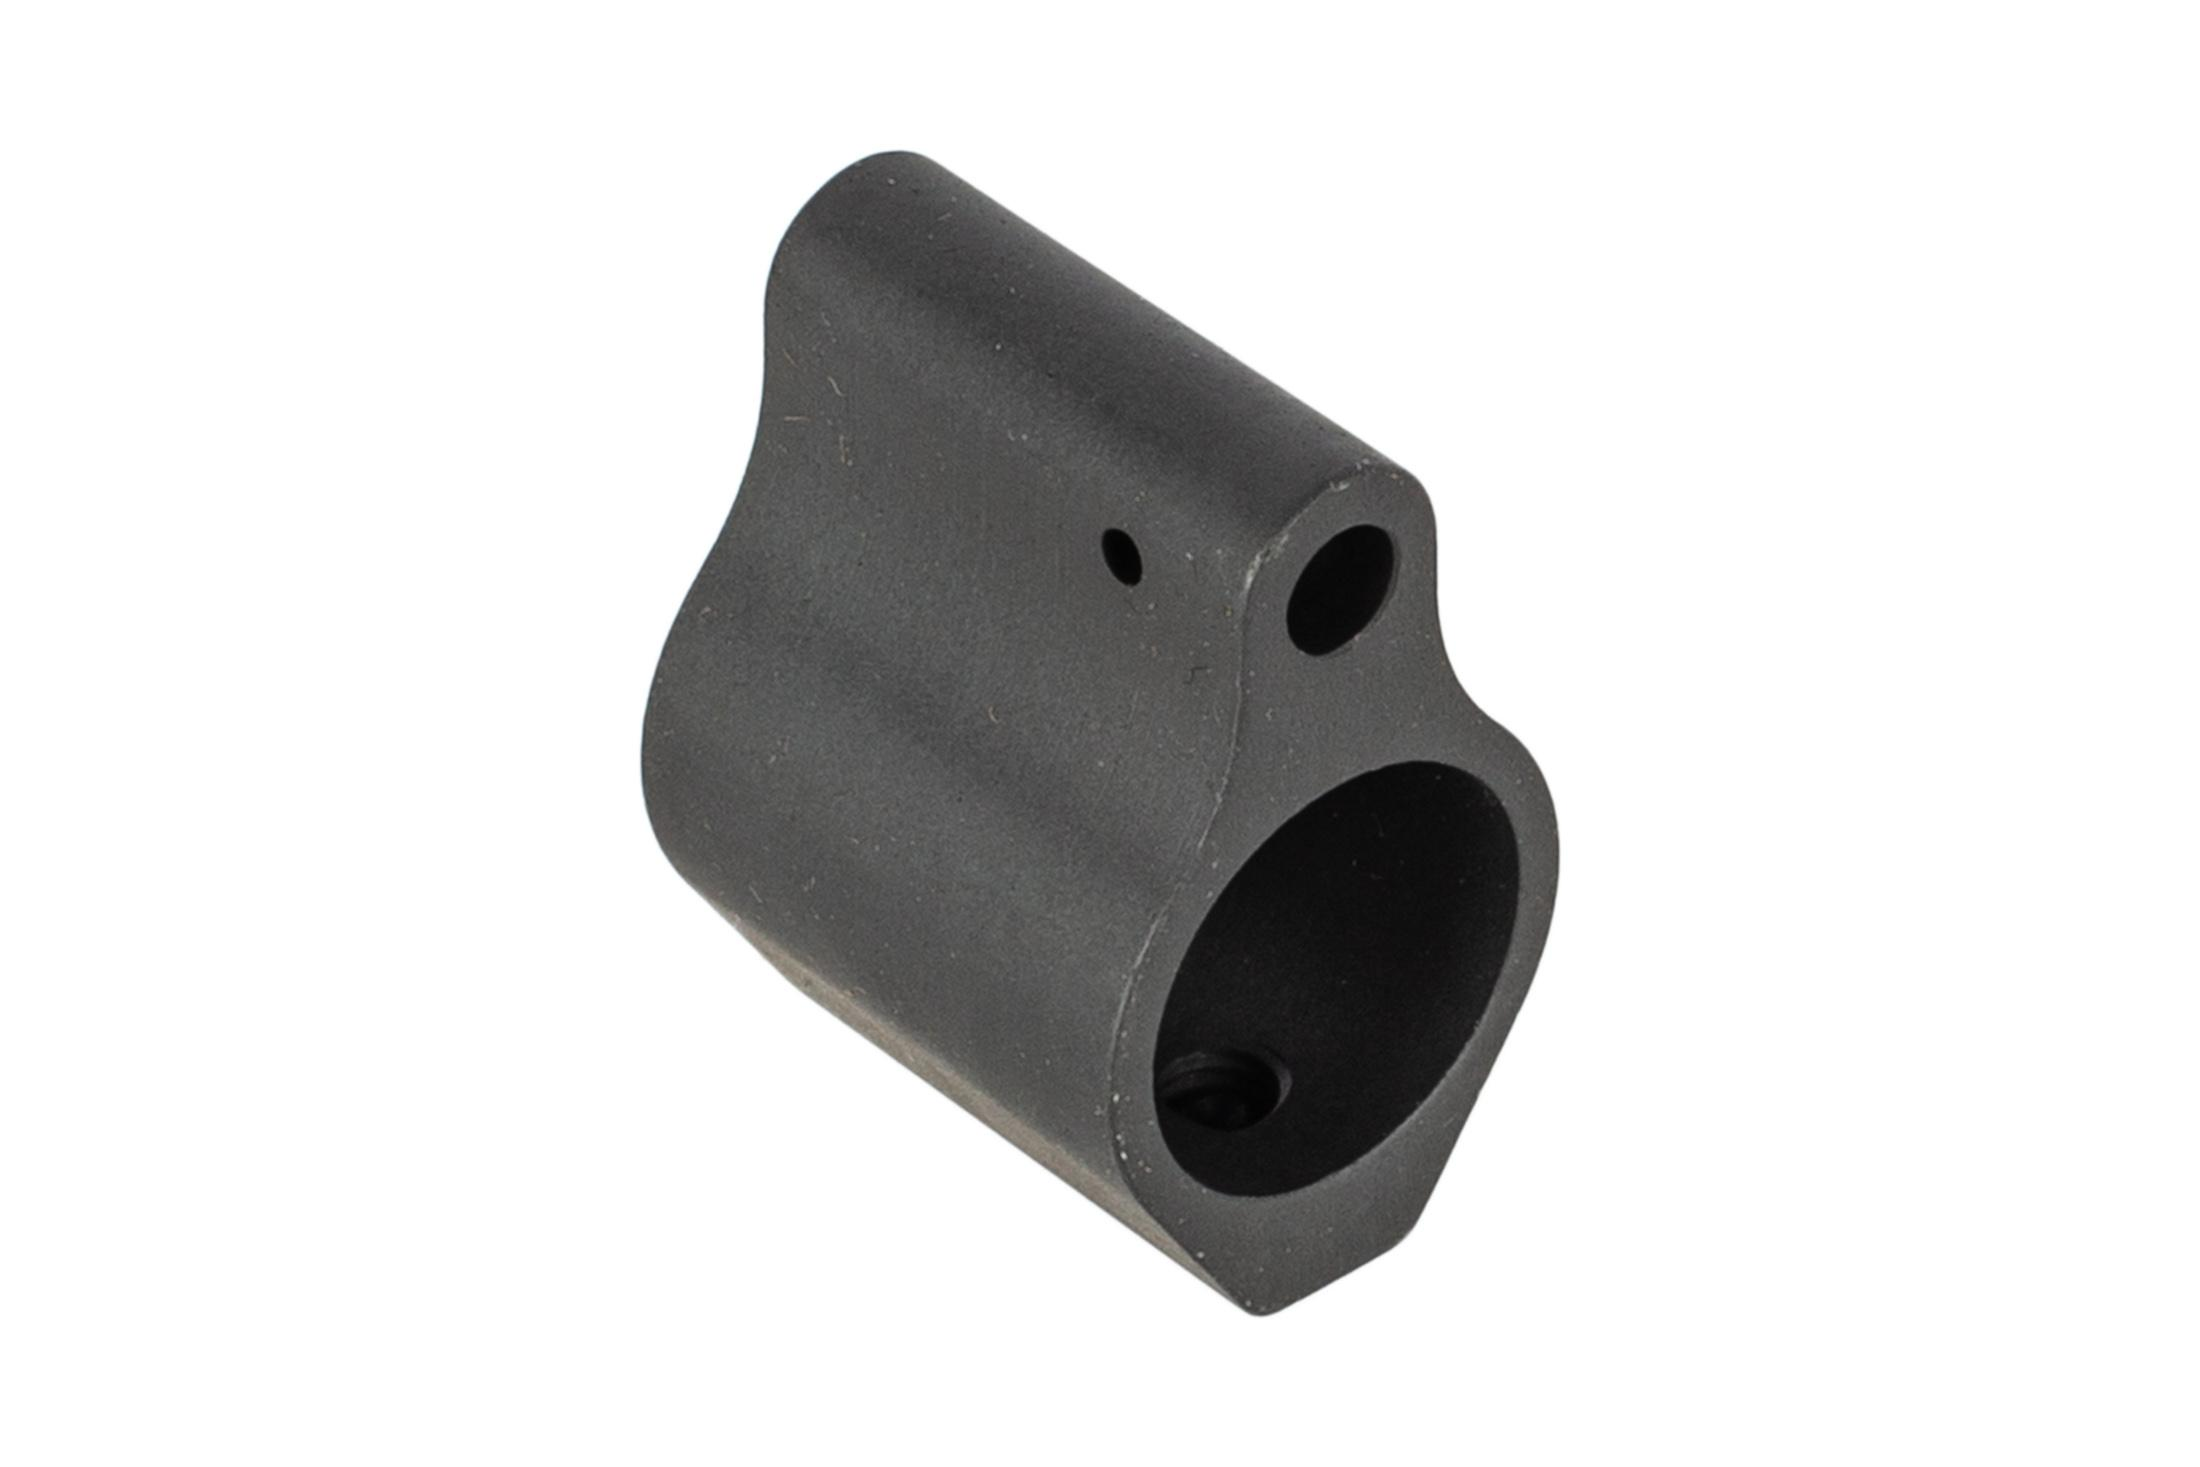 Sionics Low Profile AR15 Gas Block .625 features a Phosphate finish and set screw design